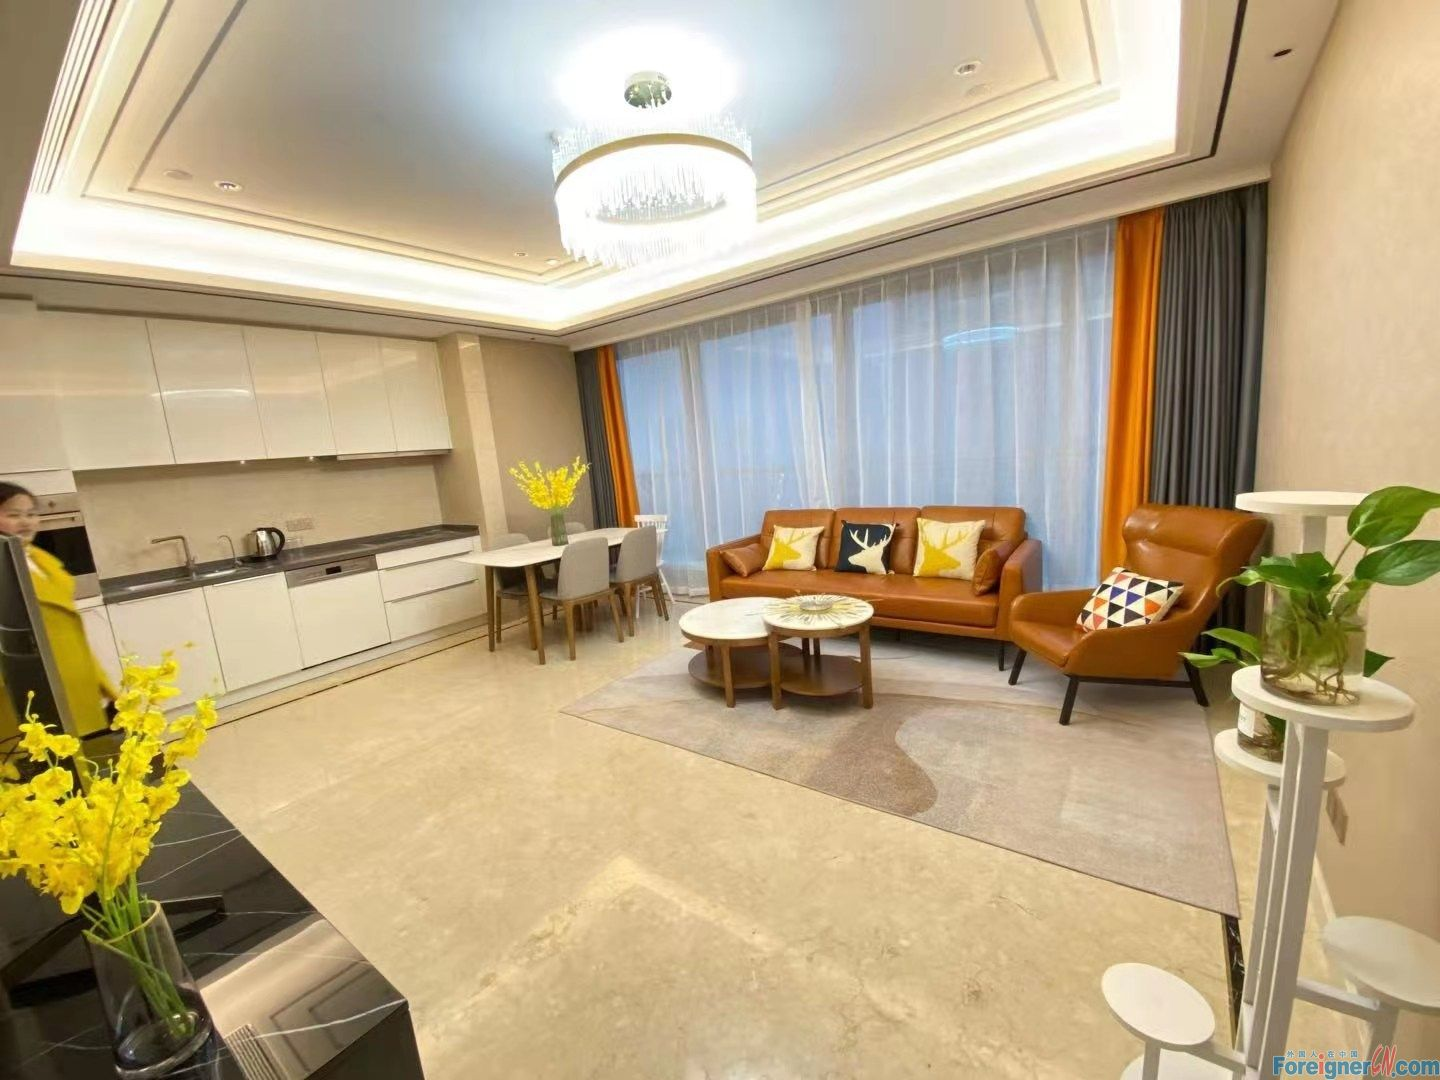 Amazing!!Suzhou Center No.9- 2 bdr and 2 bath; 130sqm/ Central AC and Floor heating/ Nearby Subway; Pant building and Xinghai Square /Brand new; Great Management Department; Fully-furnished